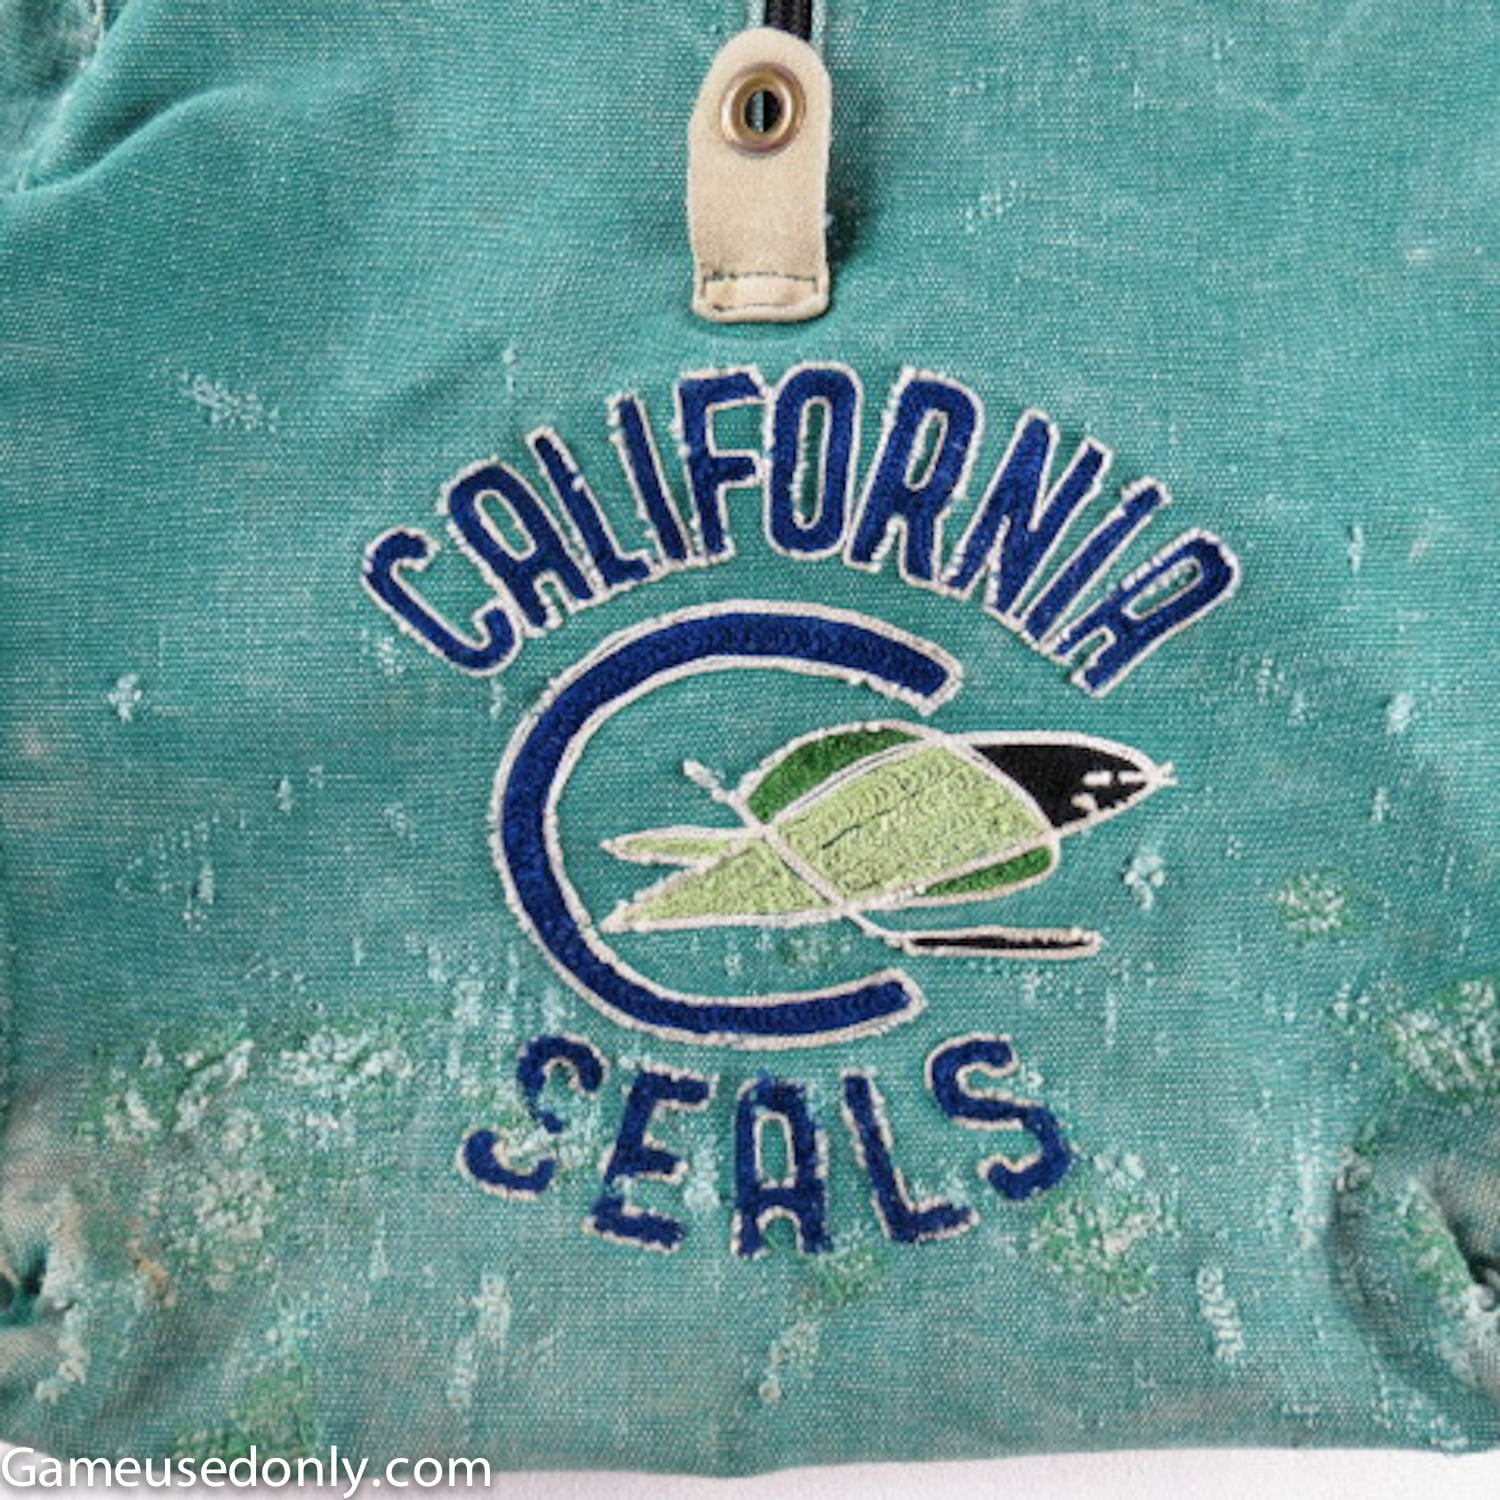 NHL-1967-Expansion-California-Oakland-Seals